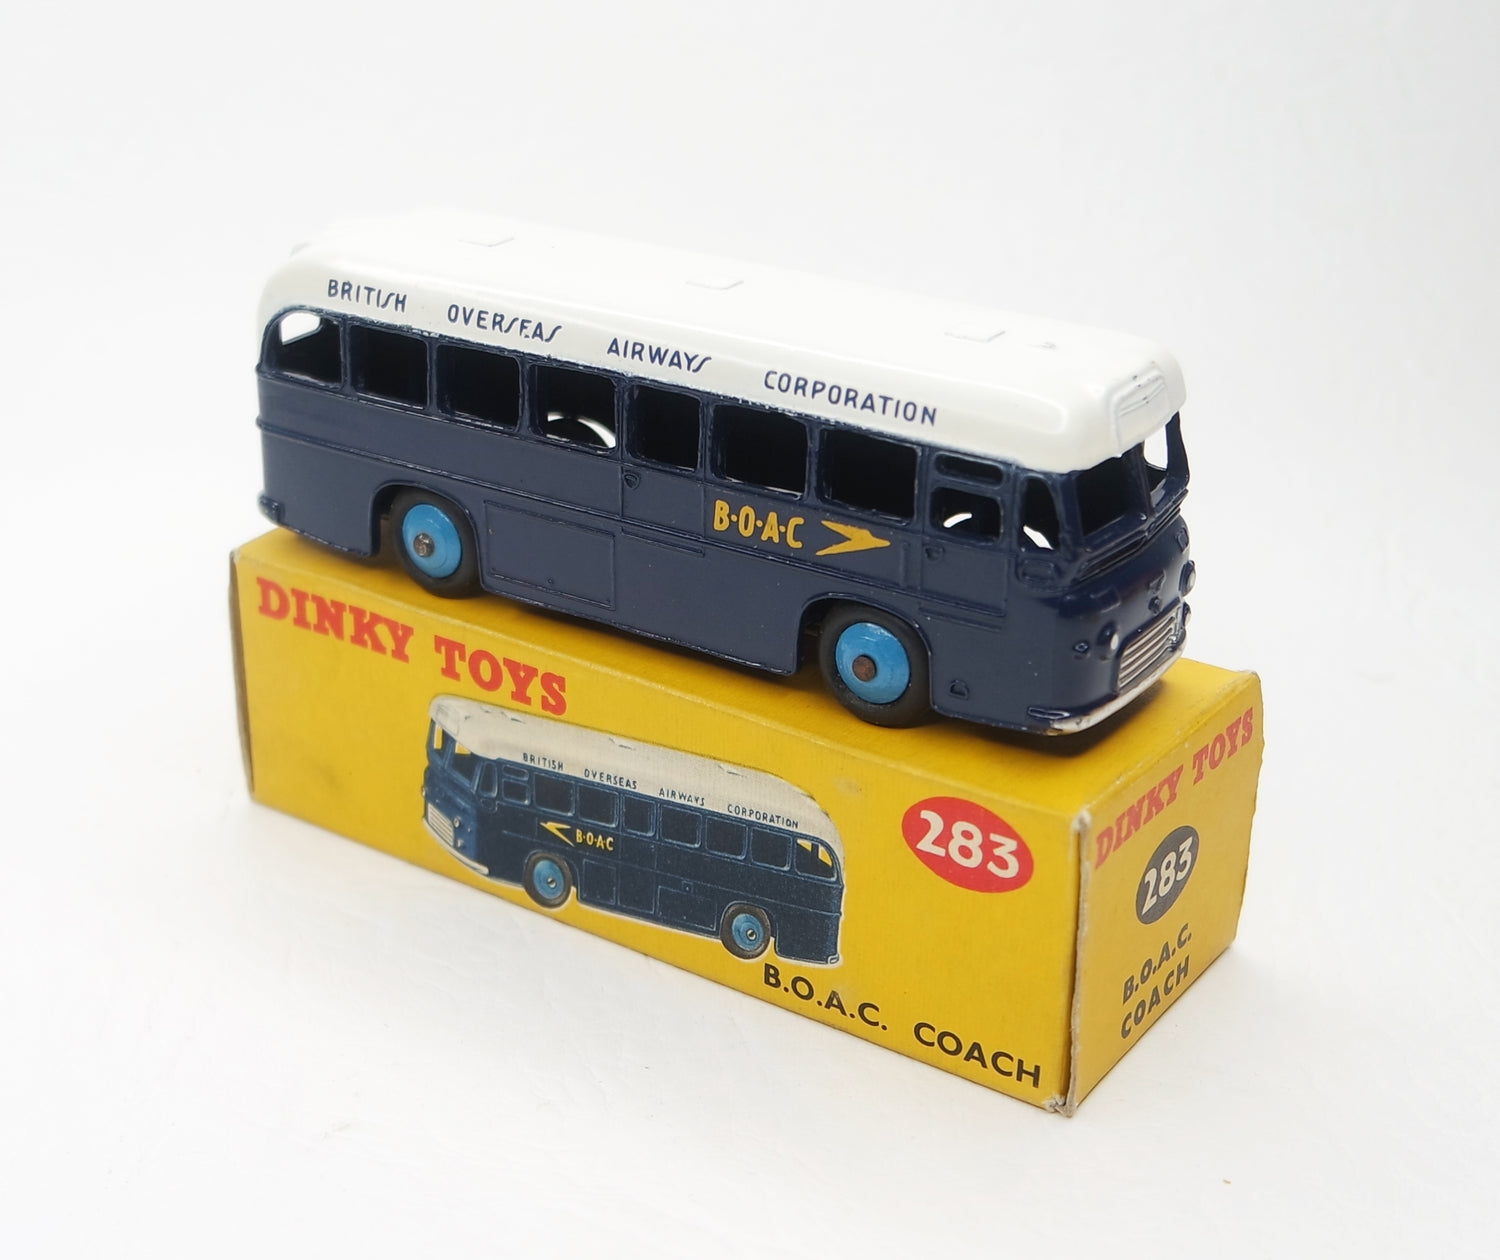 Dinky Toys 283 B.O.A.C Coach Virtually Mint/Boxed (C.C)